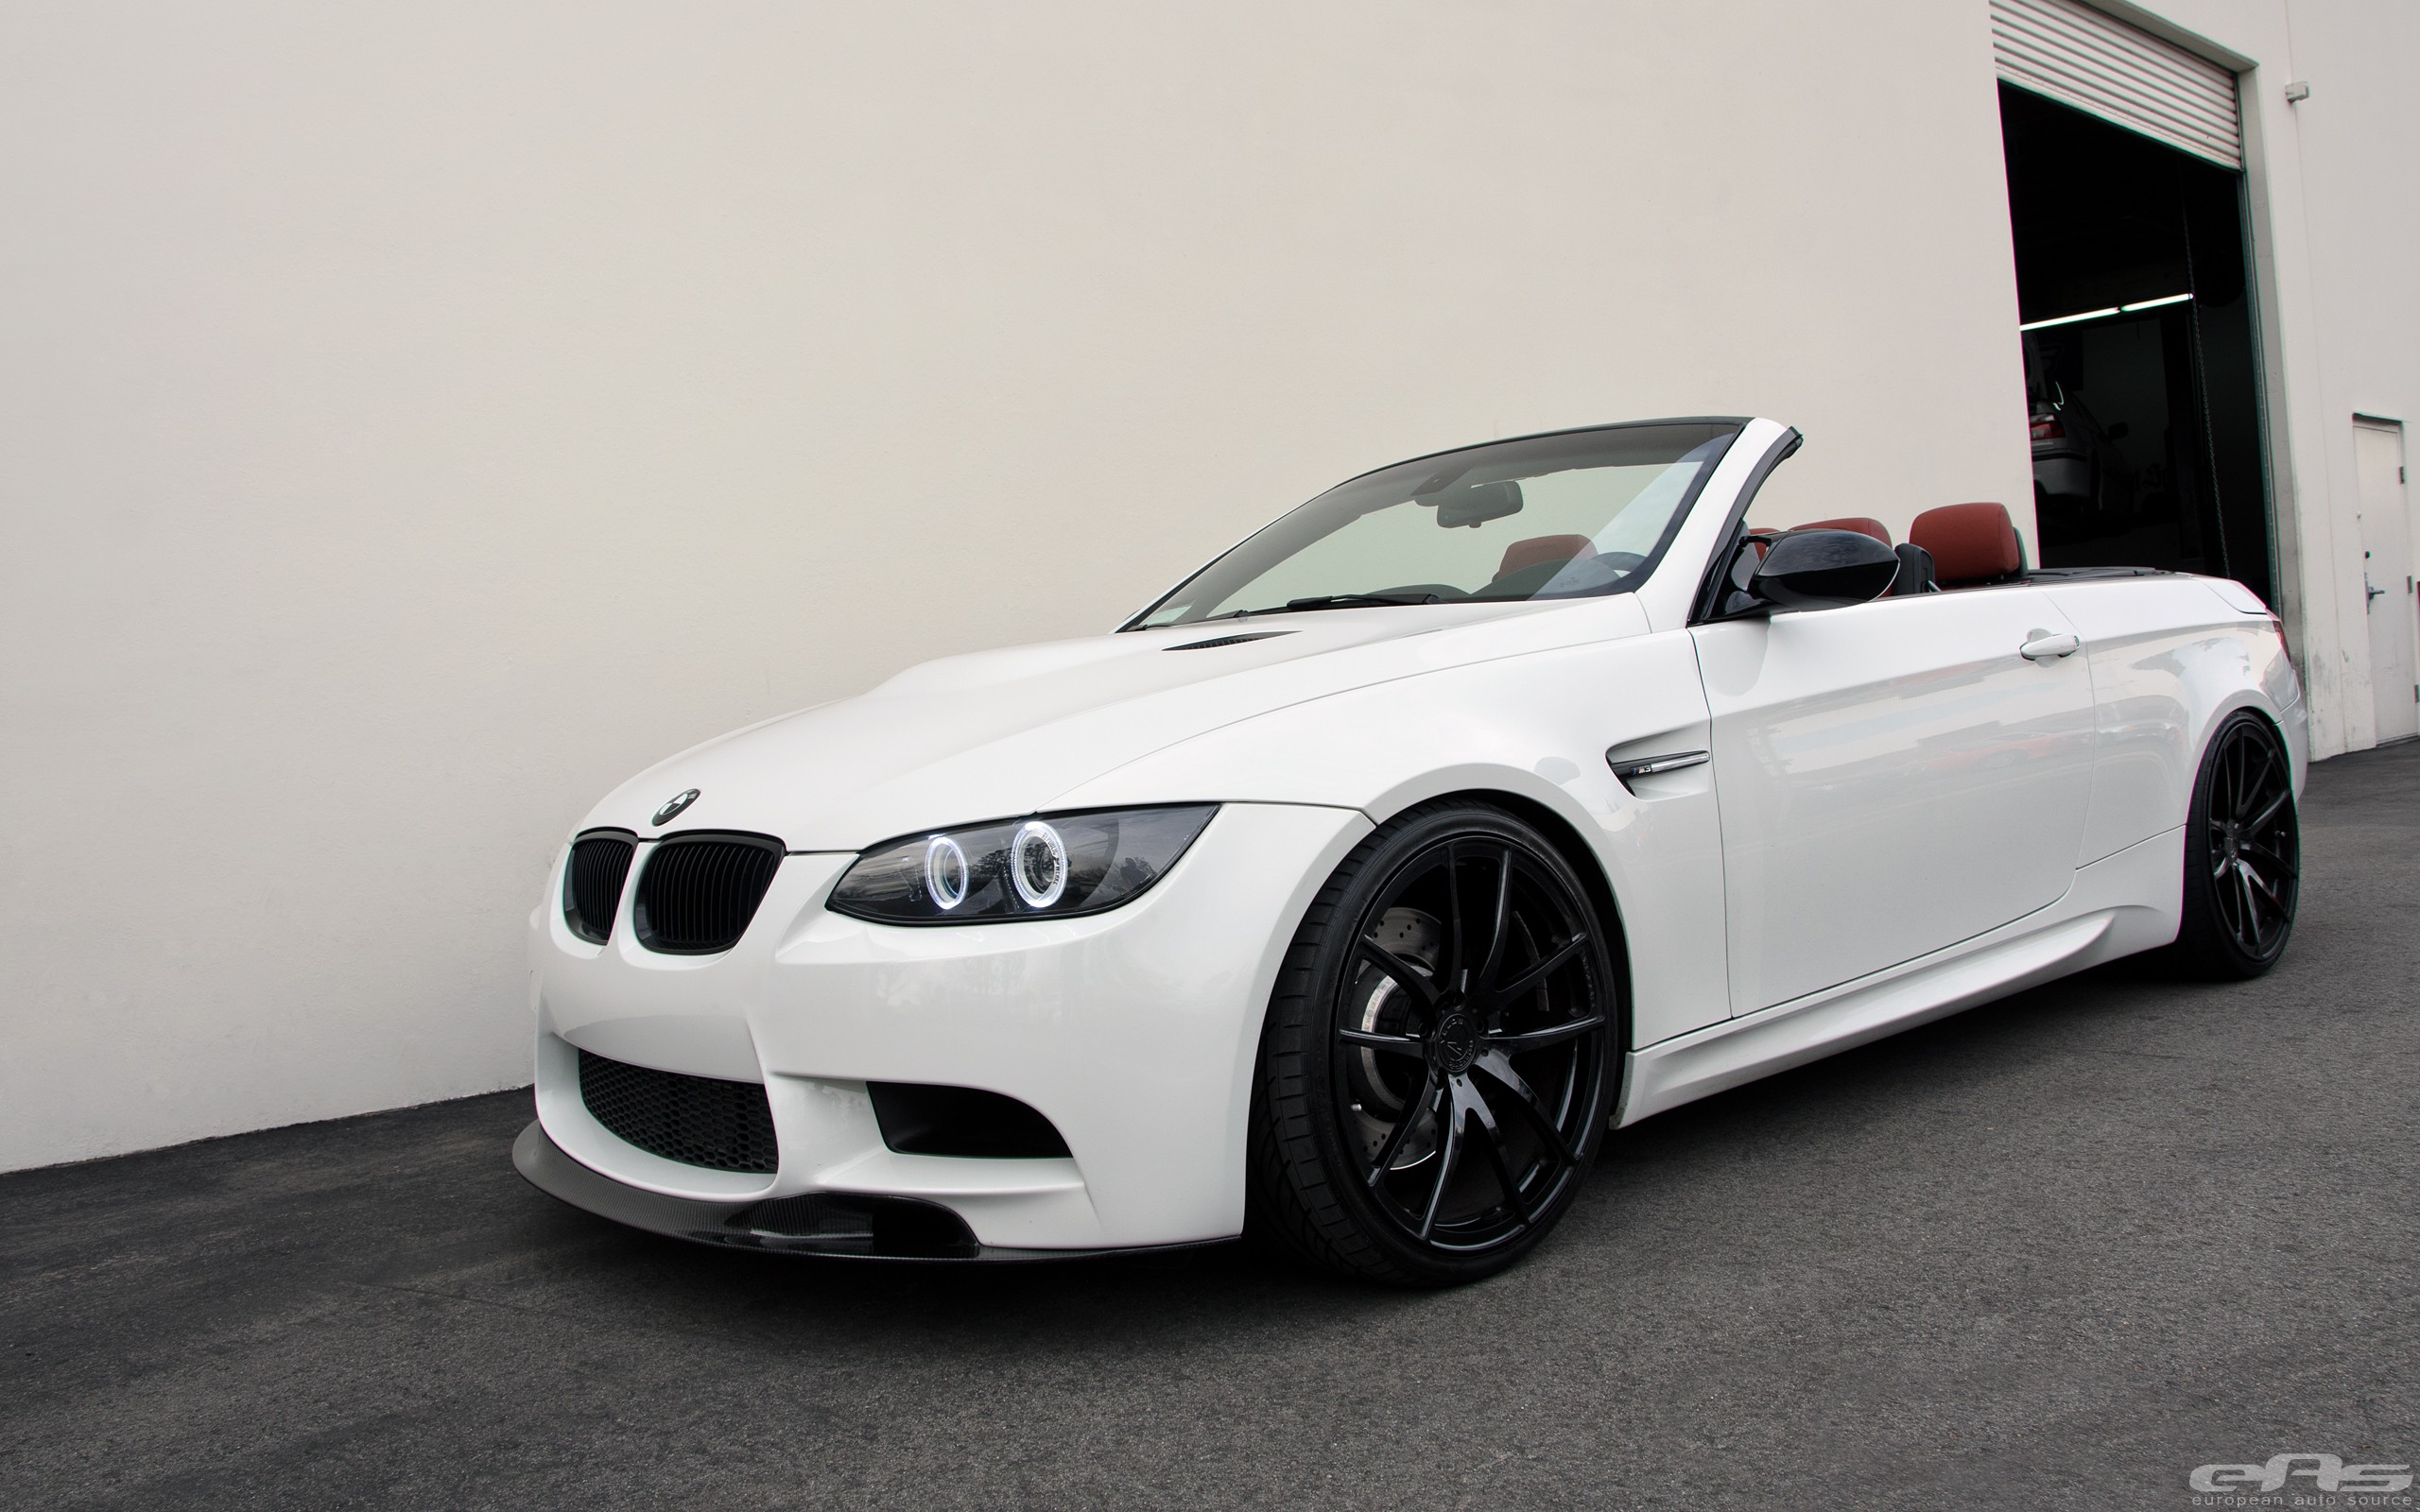 Bmw M3 Convertible >> Tuned BMW E93 M3 Convertible Puts Down 376 HP at the Wheels on the Dyno - autoevolution